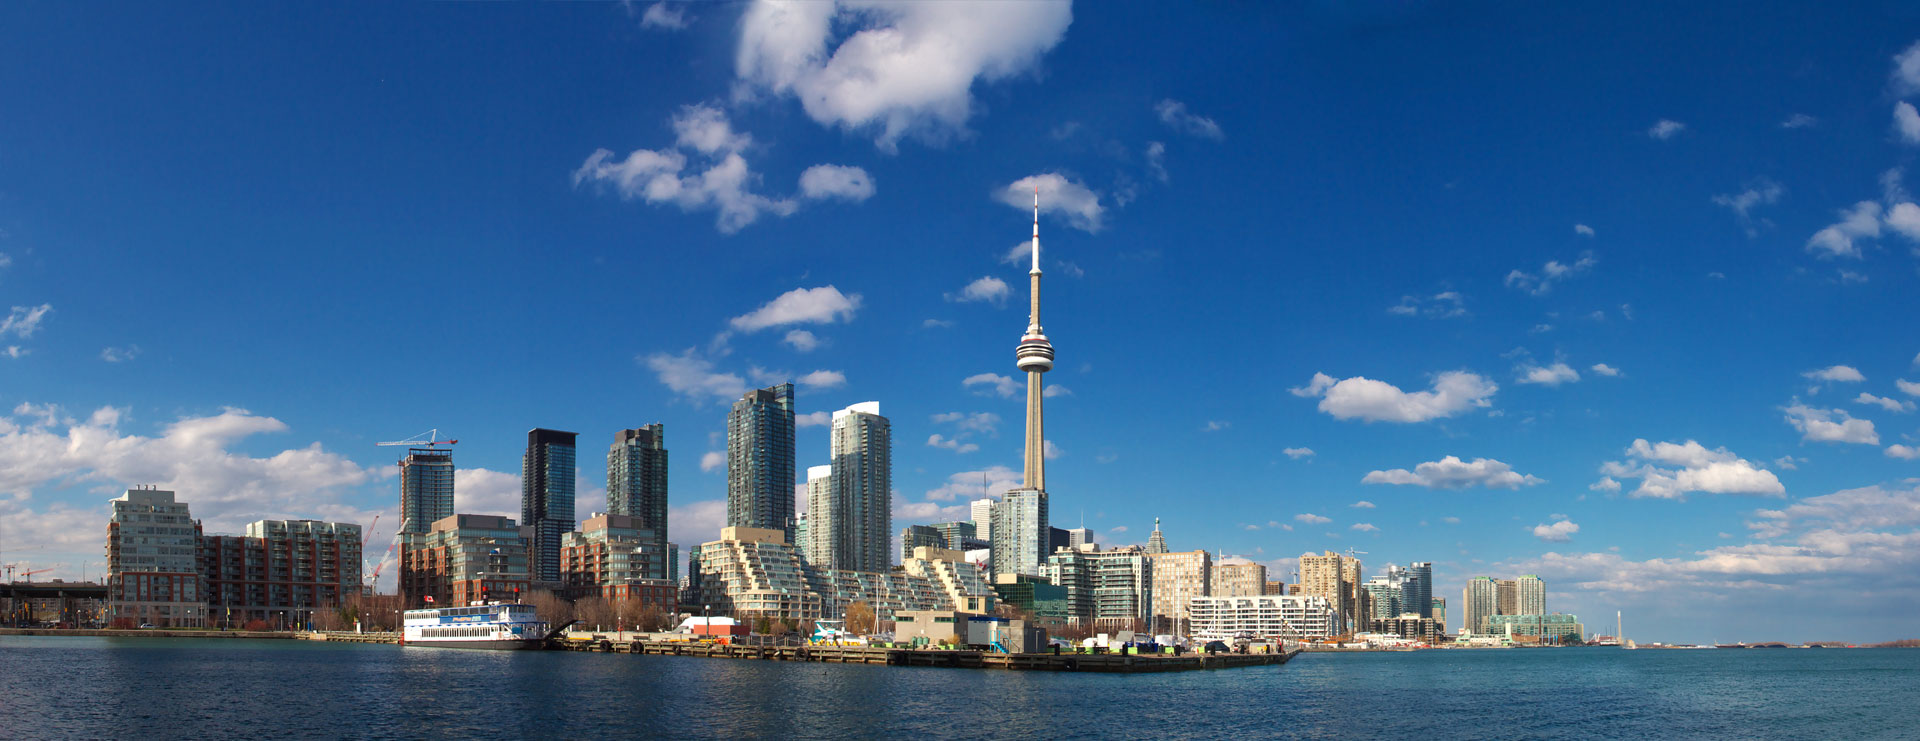 Promotional banner for the 2020 Inspiring Public Confidence conference. The banner contains a skyline image of the city of Toronto.